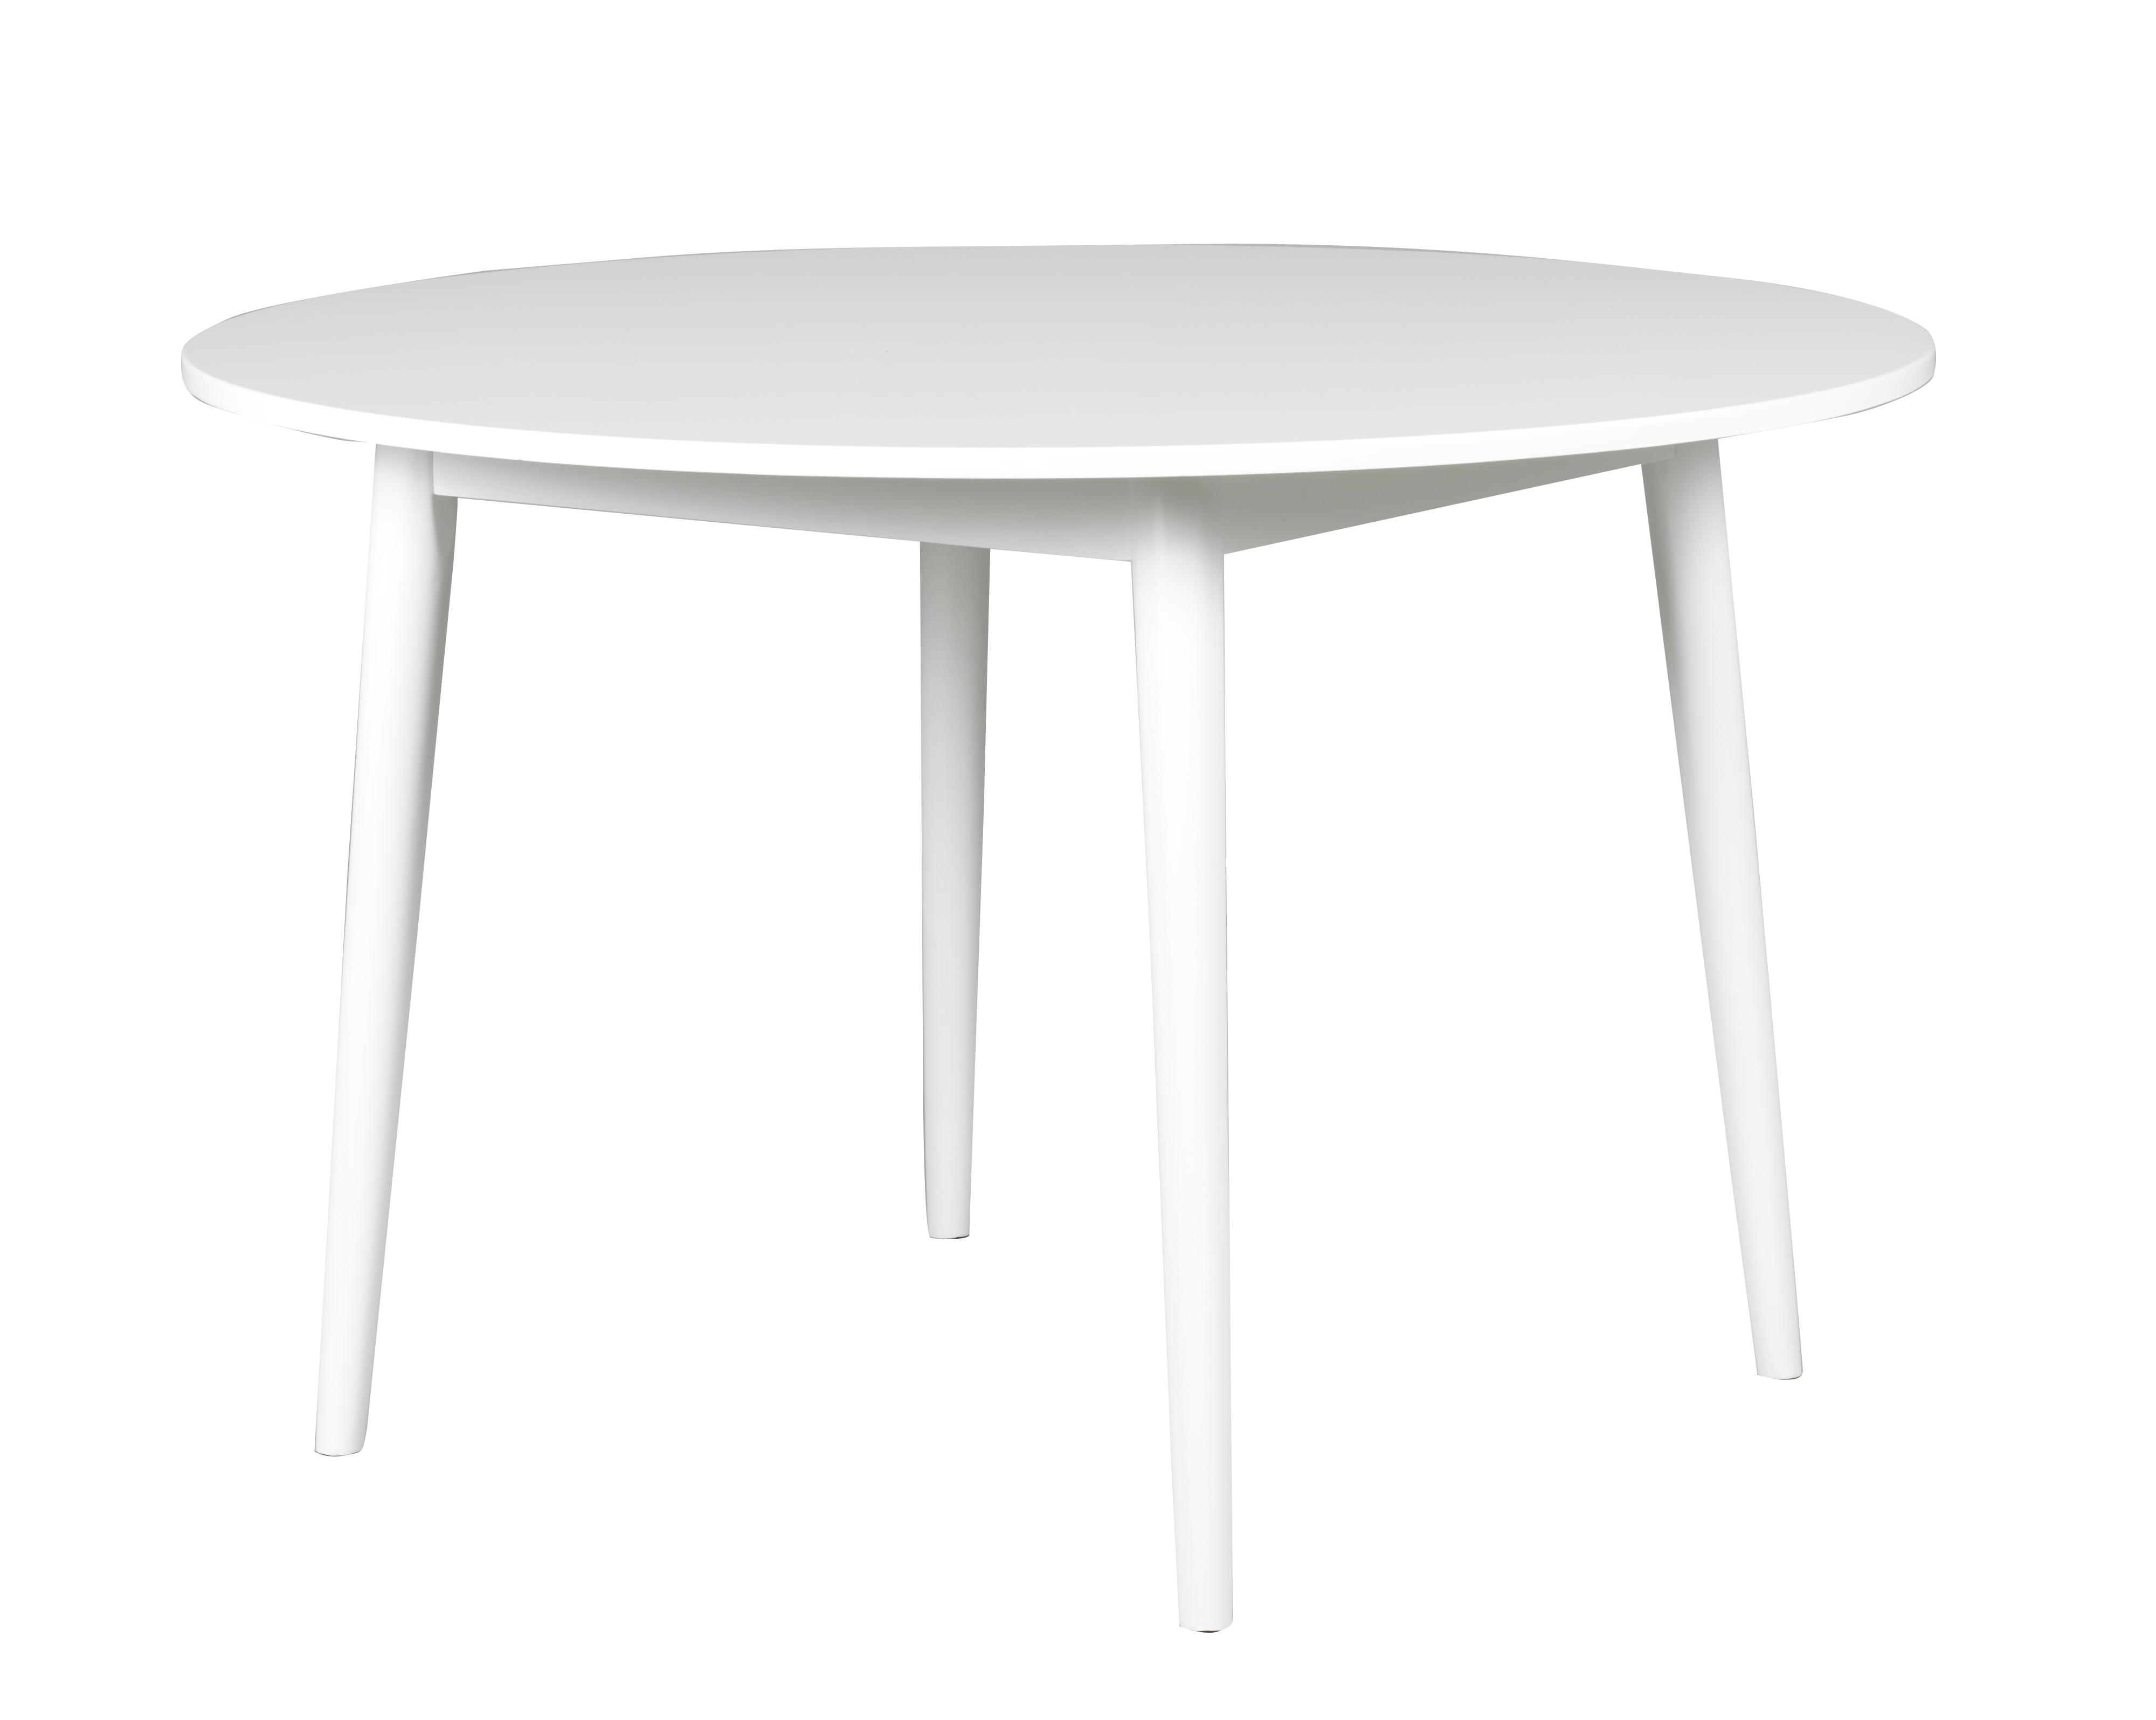 Furniture From Rowico With Regard To Popular Vienna Dining Tables (View 14 of 25)